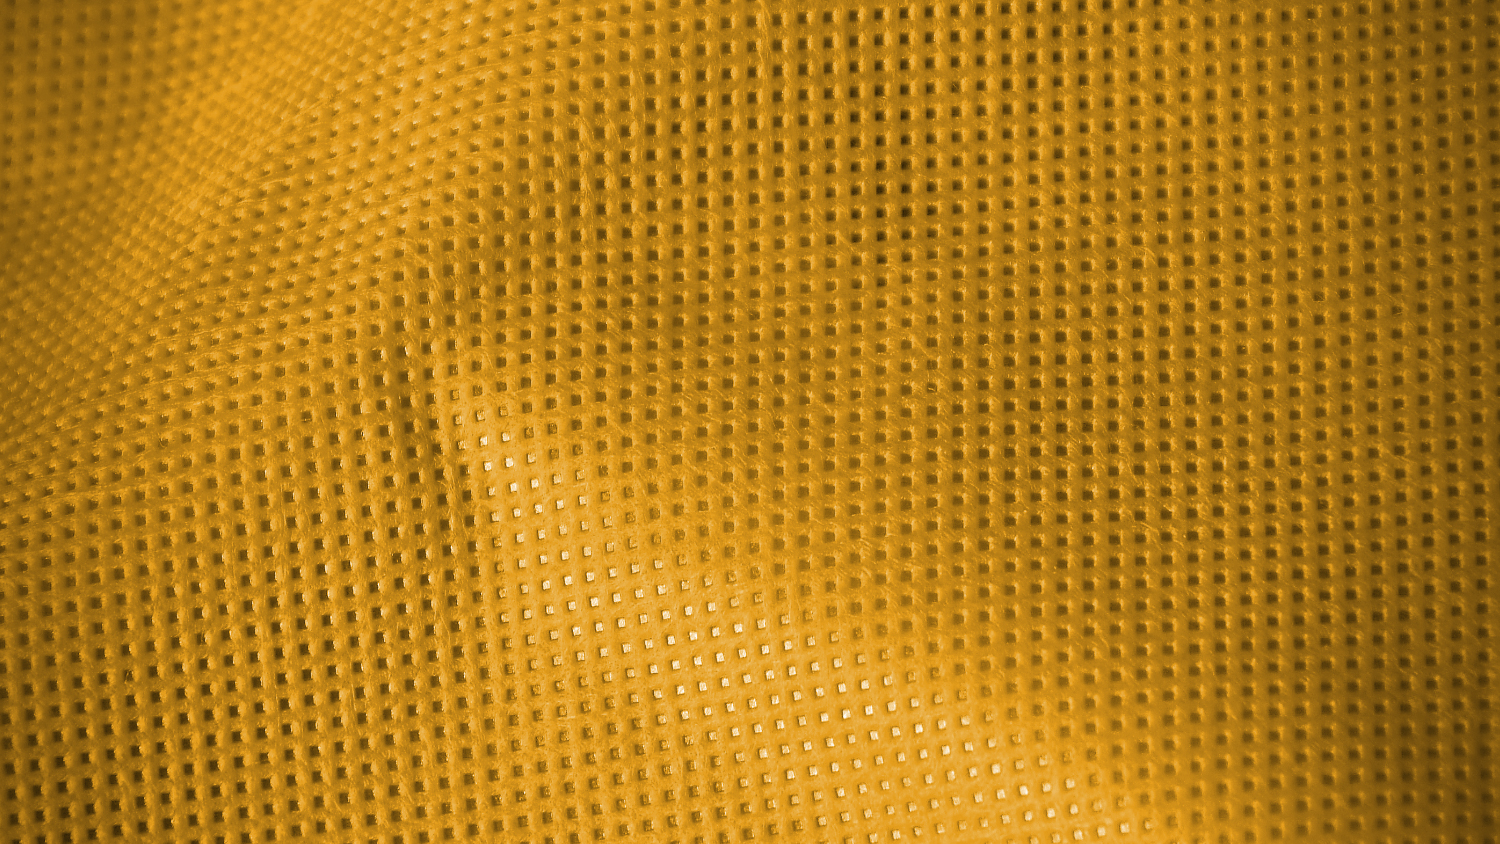 A textural, bright yellow nonwoven textile.